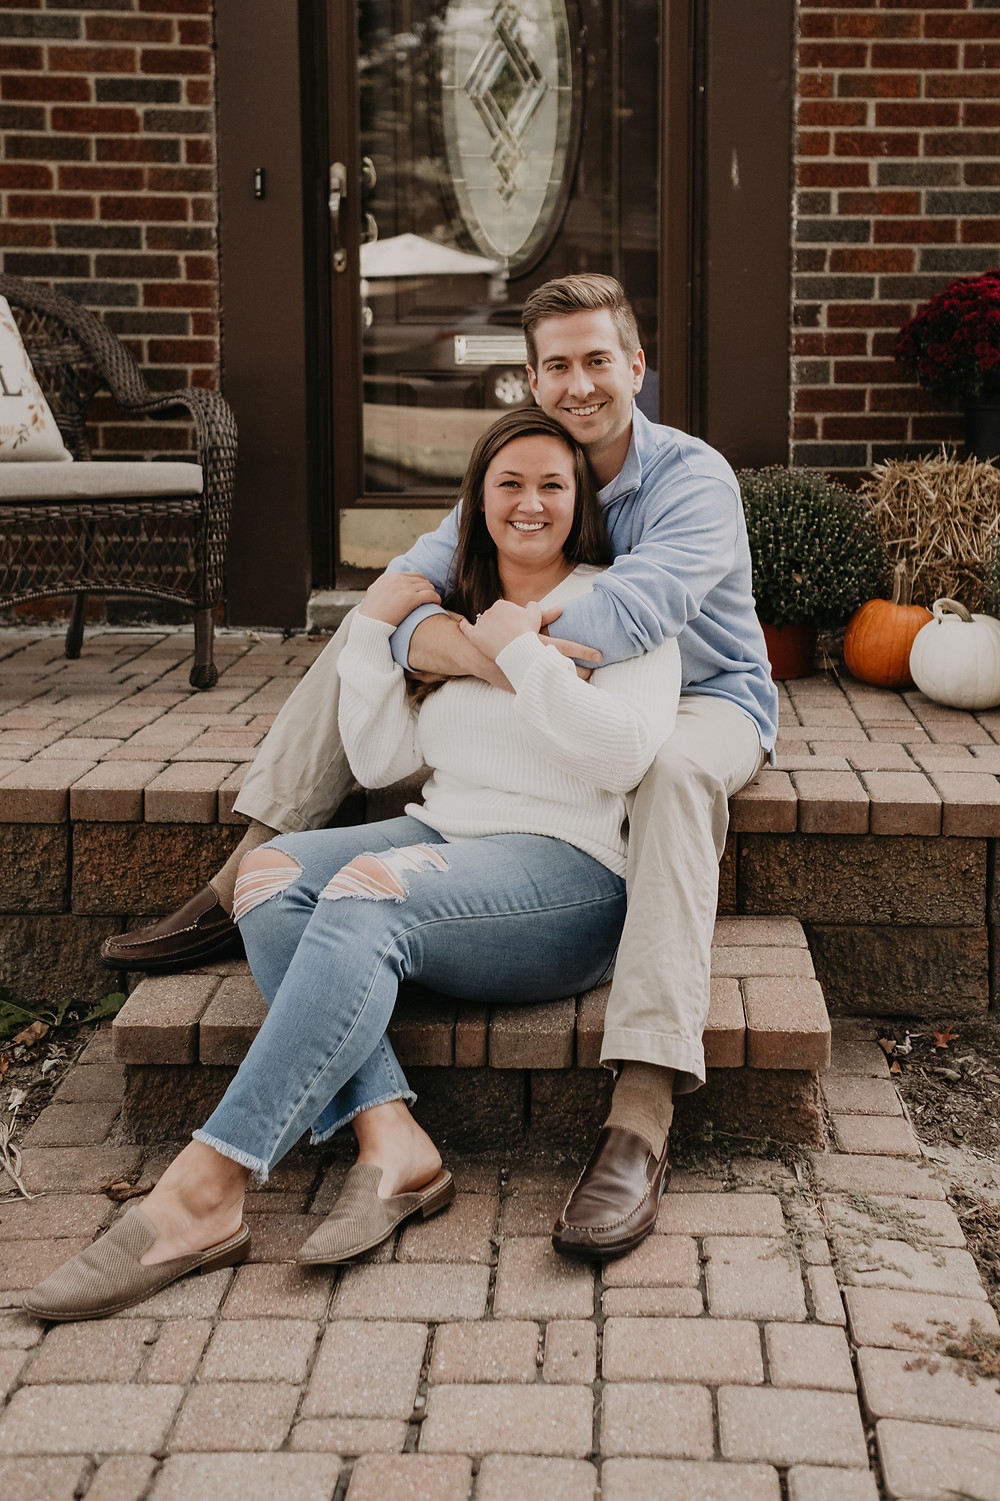 Couple sitting on porch steps at home engagement session in Metro Detroit. Photographed by Nicole Leanne Photography.